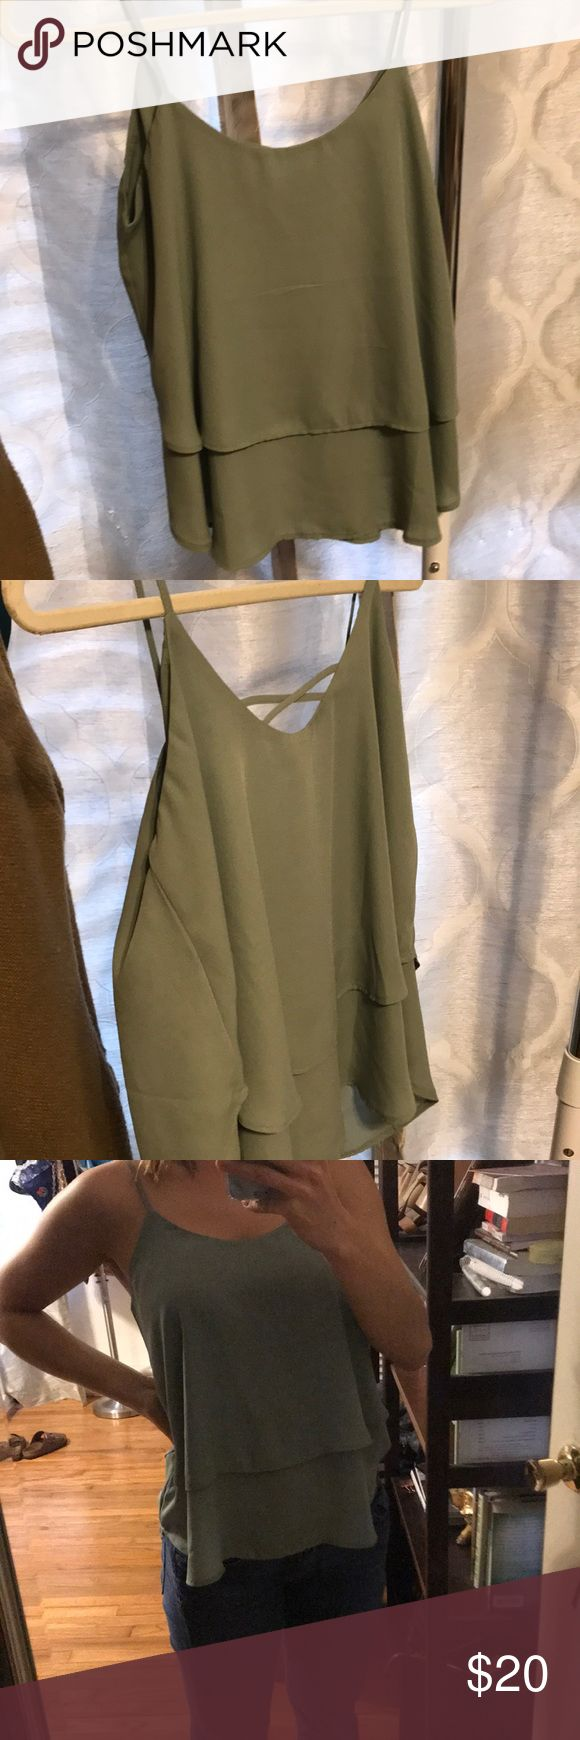 FRANCESCAS flowy sage green strappy top 100% polyester Sage green top So cute! Very comfortable. Fabric falls in two tiers. Mini cross-back detailing. Francesca's Collections Tops Blouses